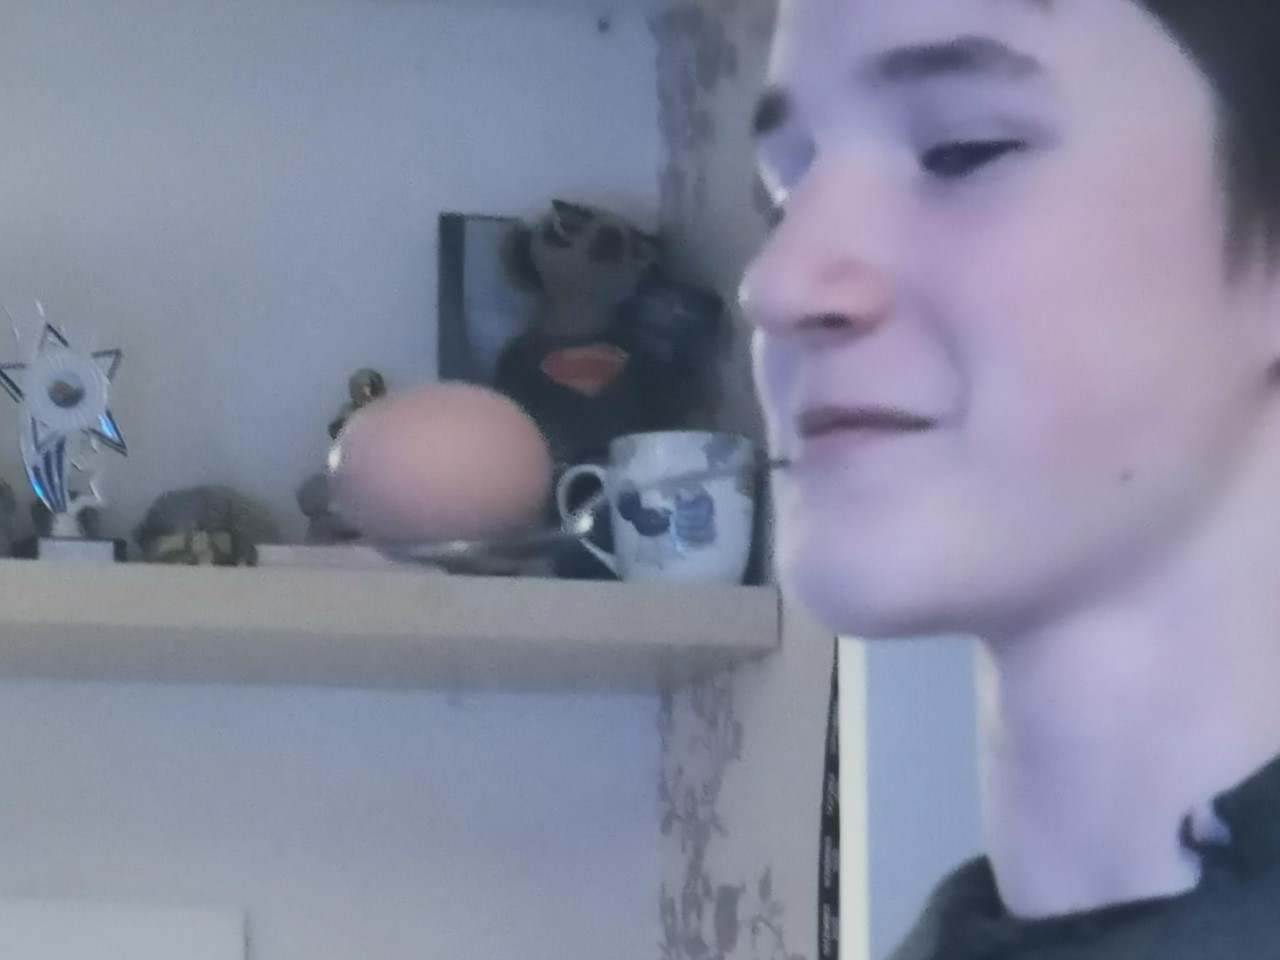 james with a spoon and egg in his mouth